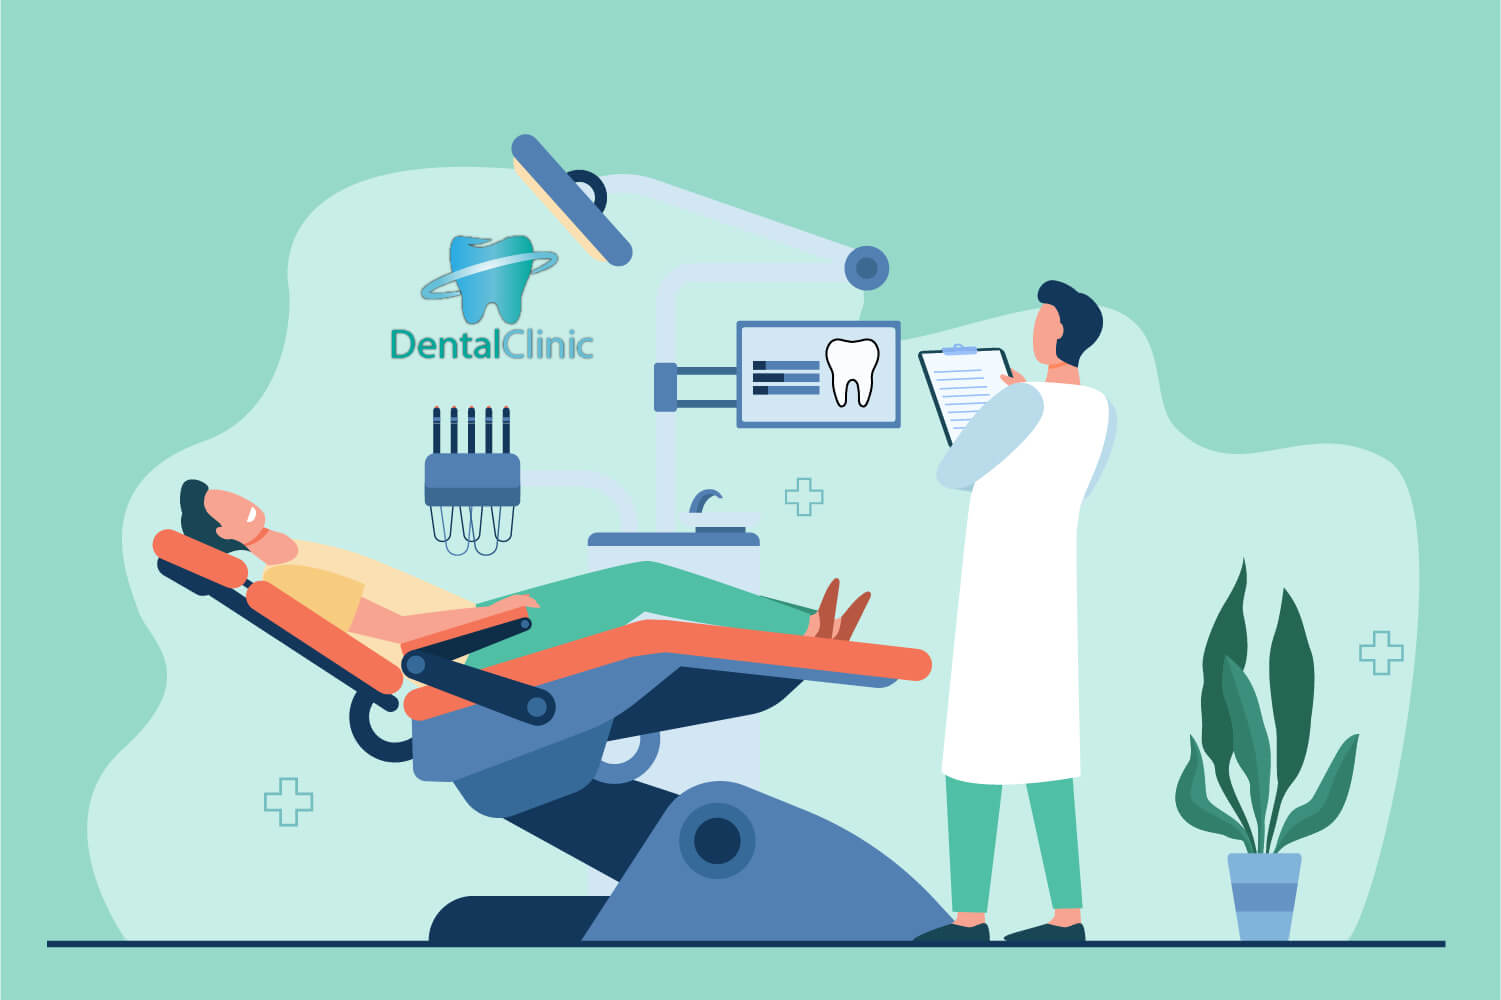 Dental Web Marketing – How To Get Clients From The Internet